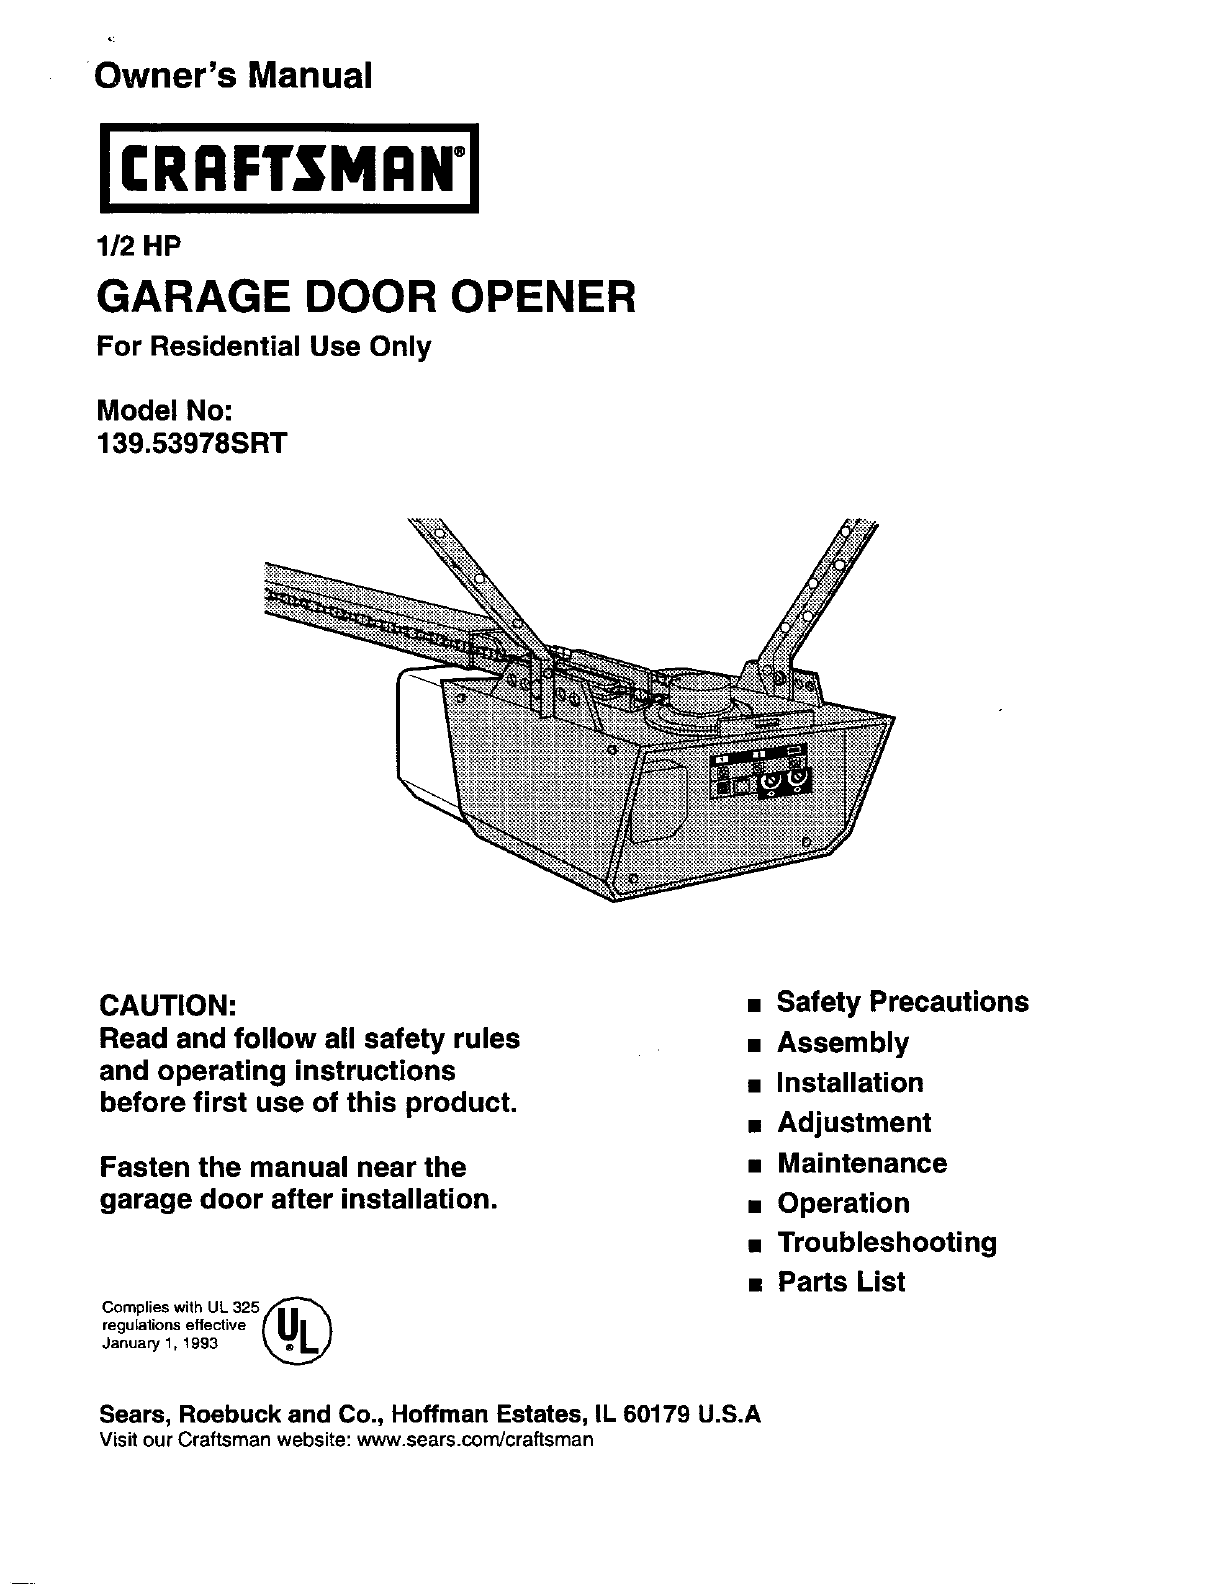 0f05b938 d0cb 4872 aeee 96ef63eab4f3 bg1 craftsman garage door opener 139 53978srt user guide craftsman garage door wiring diagram at beritabola.co